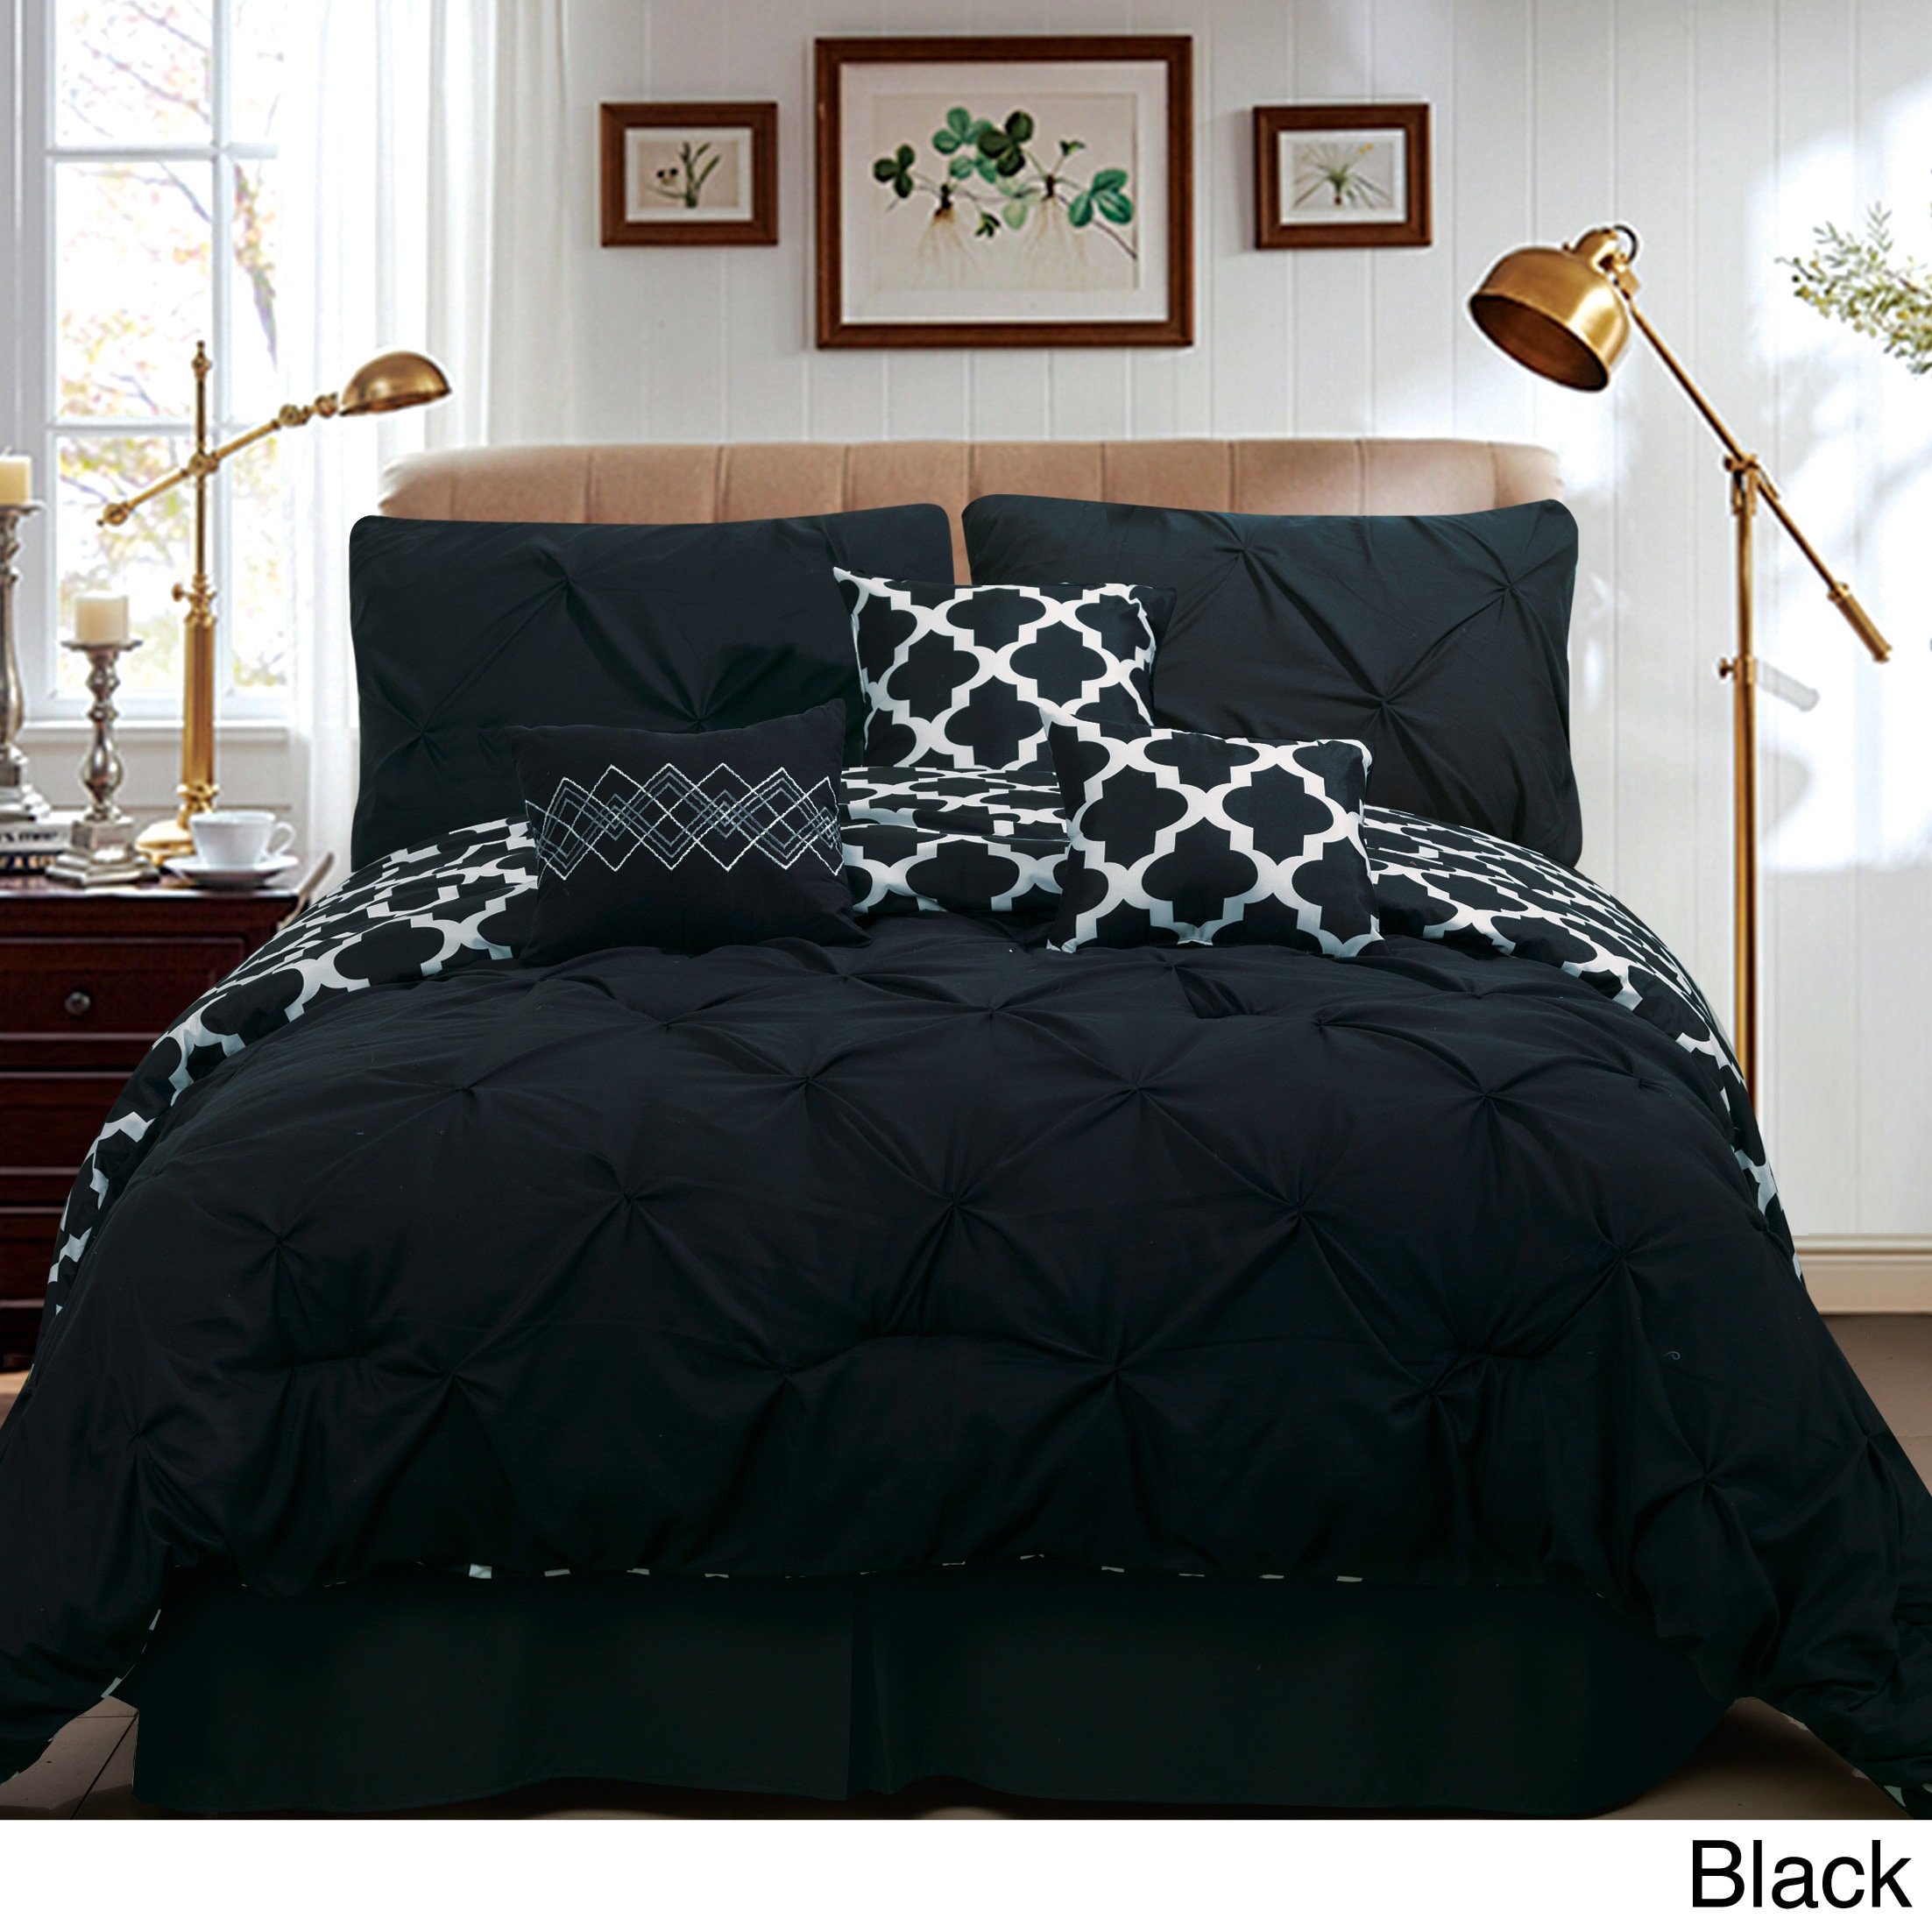 pinch ktx set ramesses comforter pleat piece white by